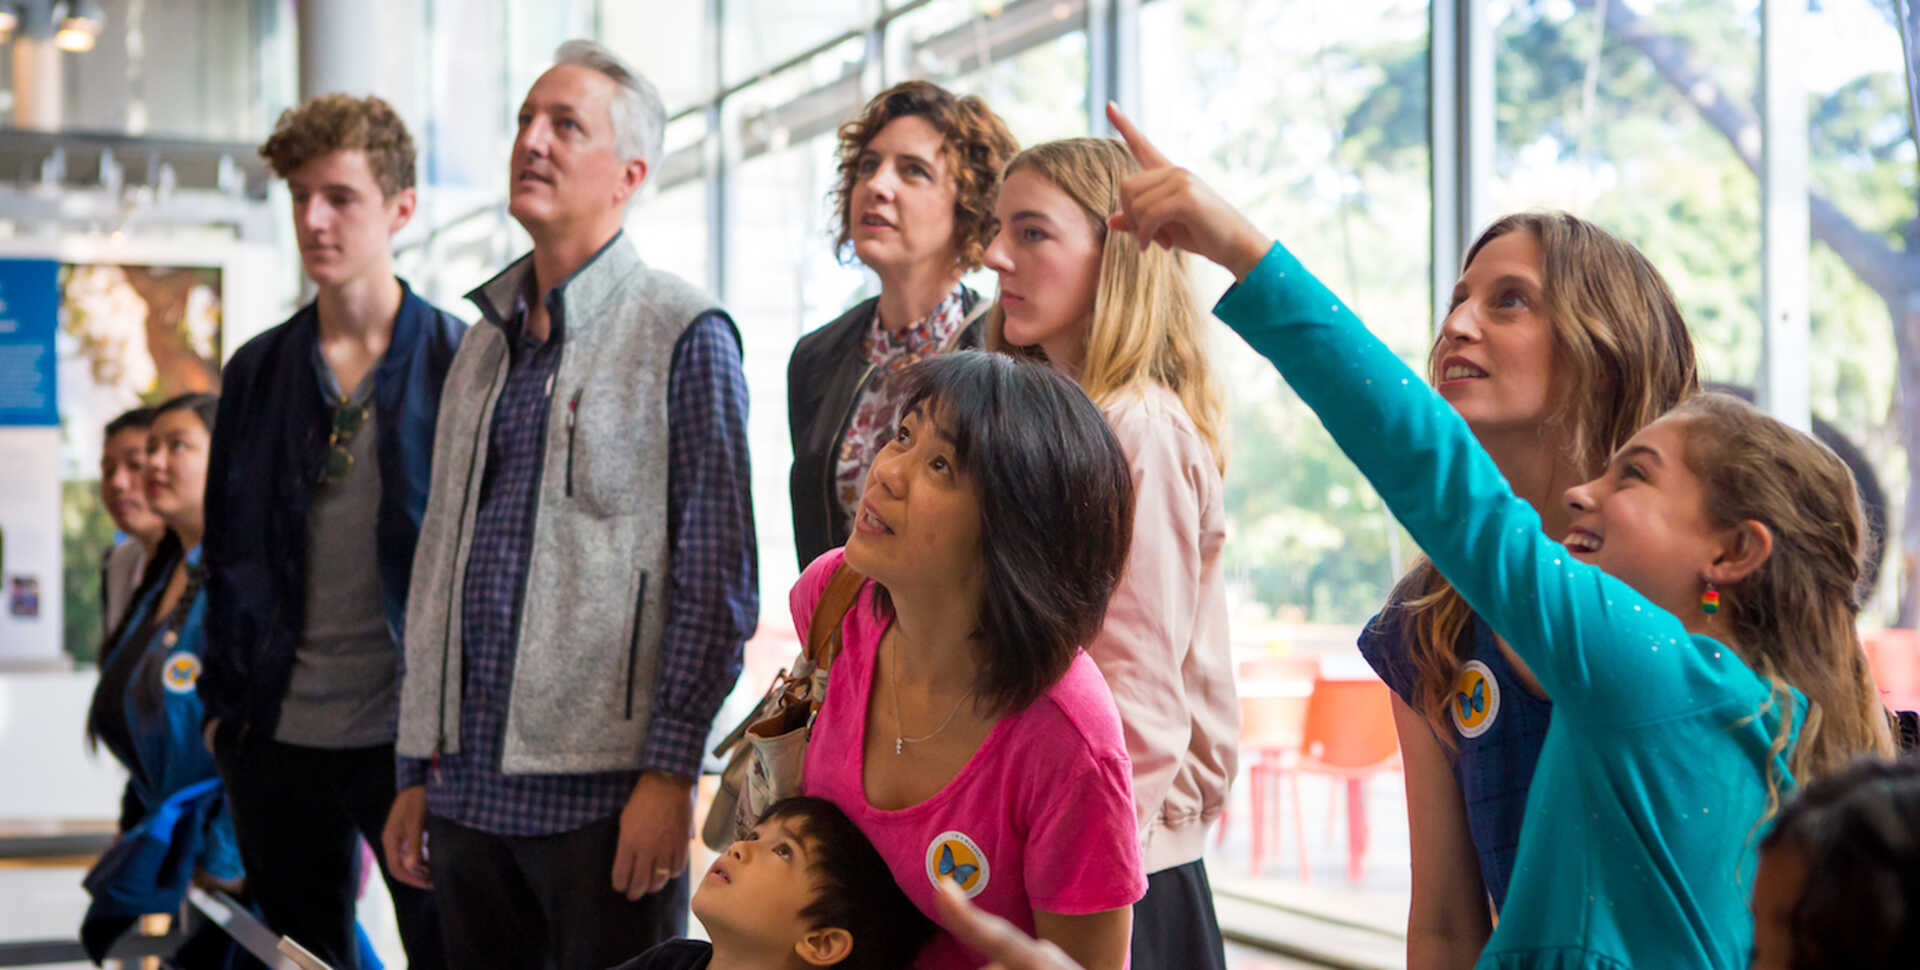 Members watching Gouldian finches in the Color of Life exhibit at the California Academy of Sciences